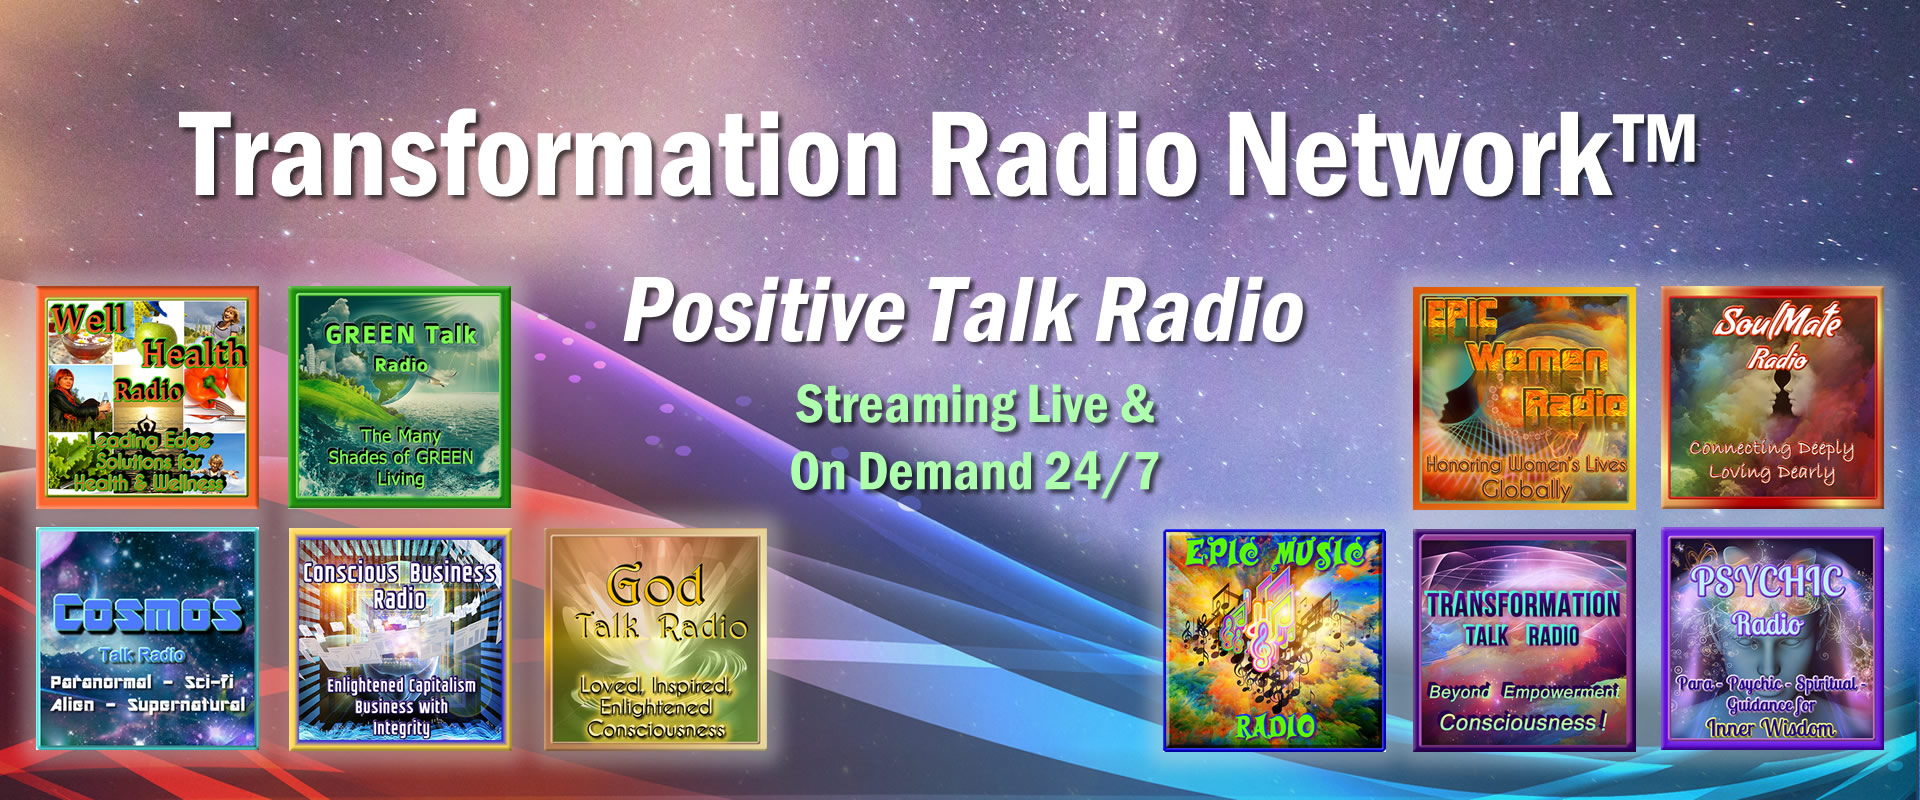 The Transformation Radio Network